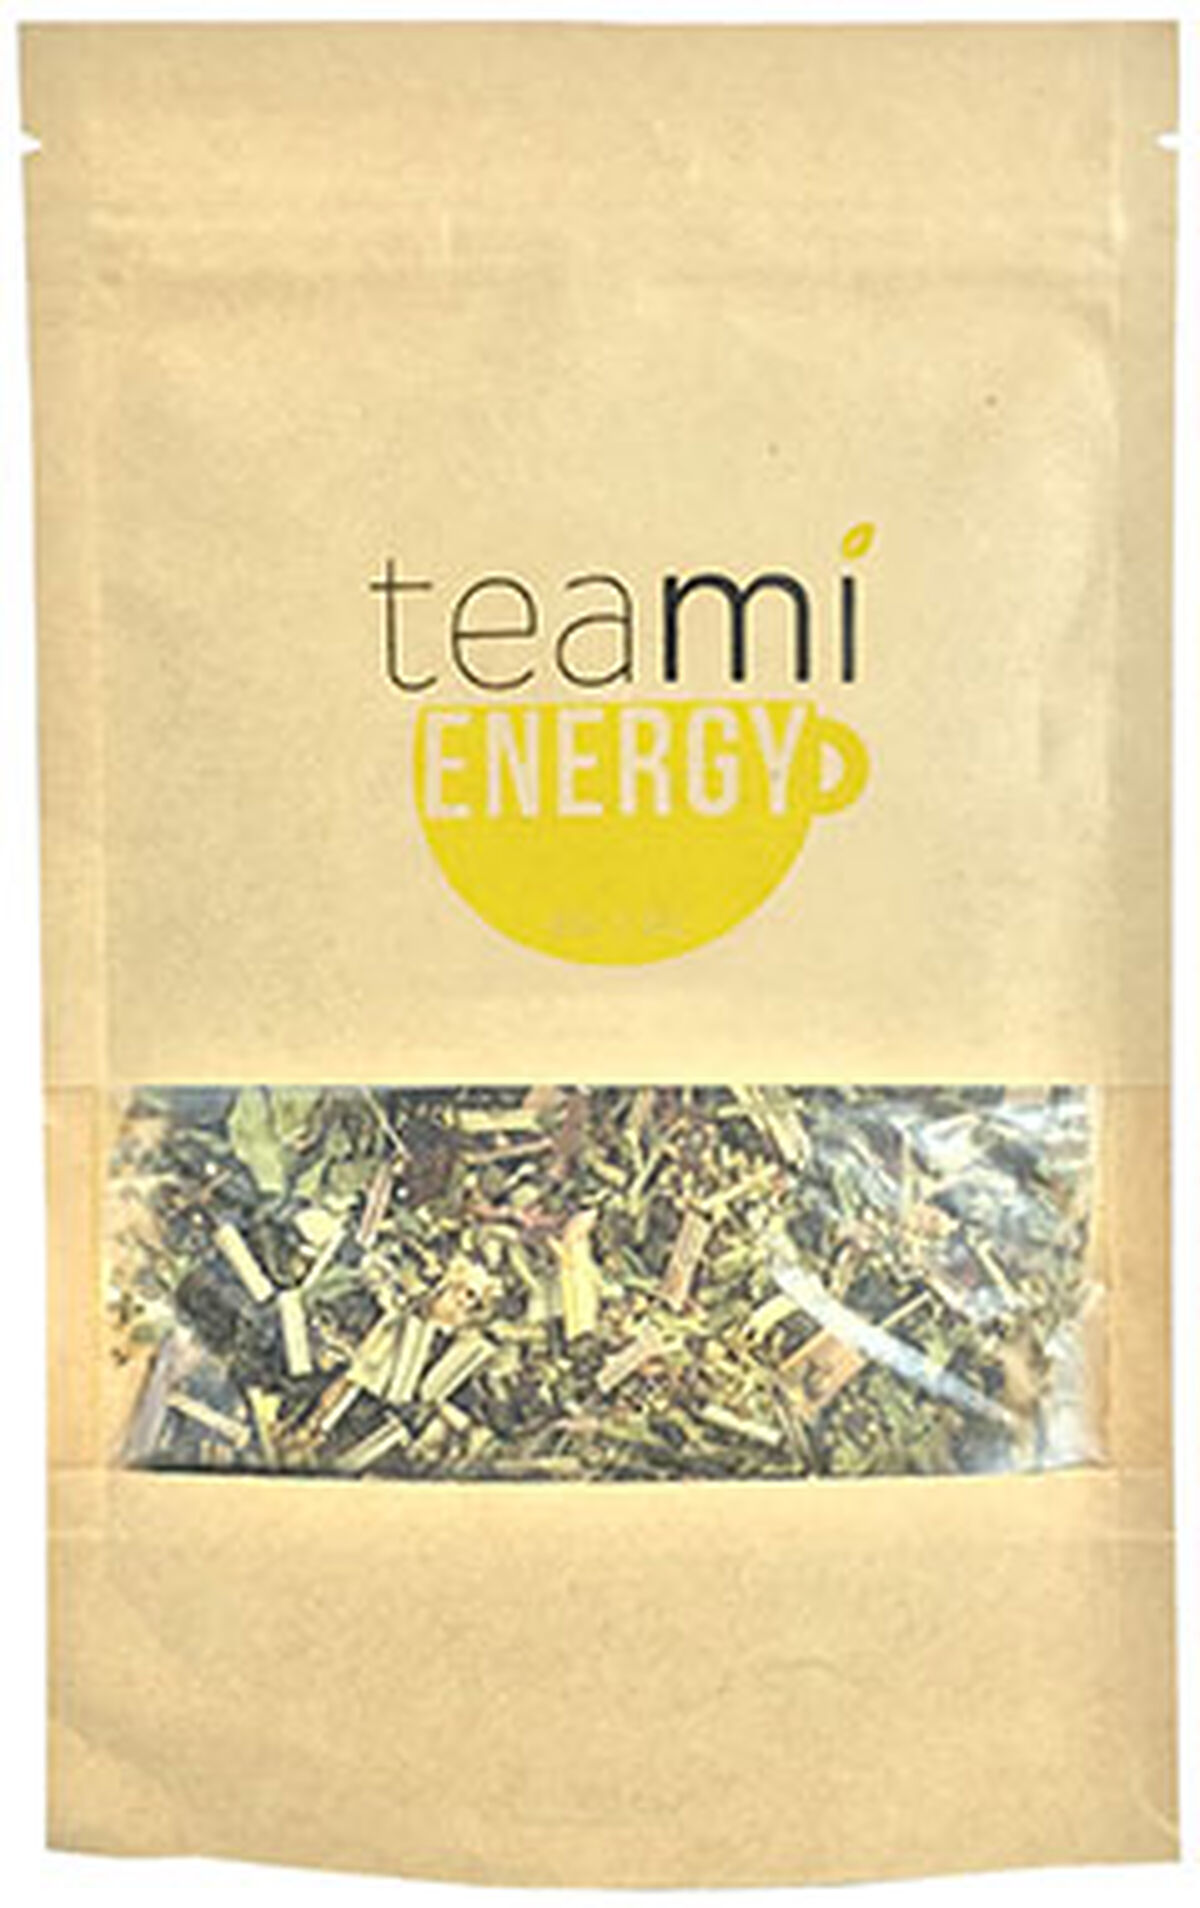 Teami Energy | Vitamin World | Tuggl